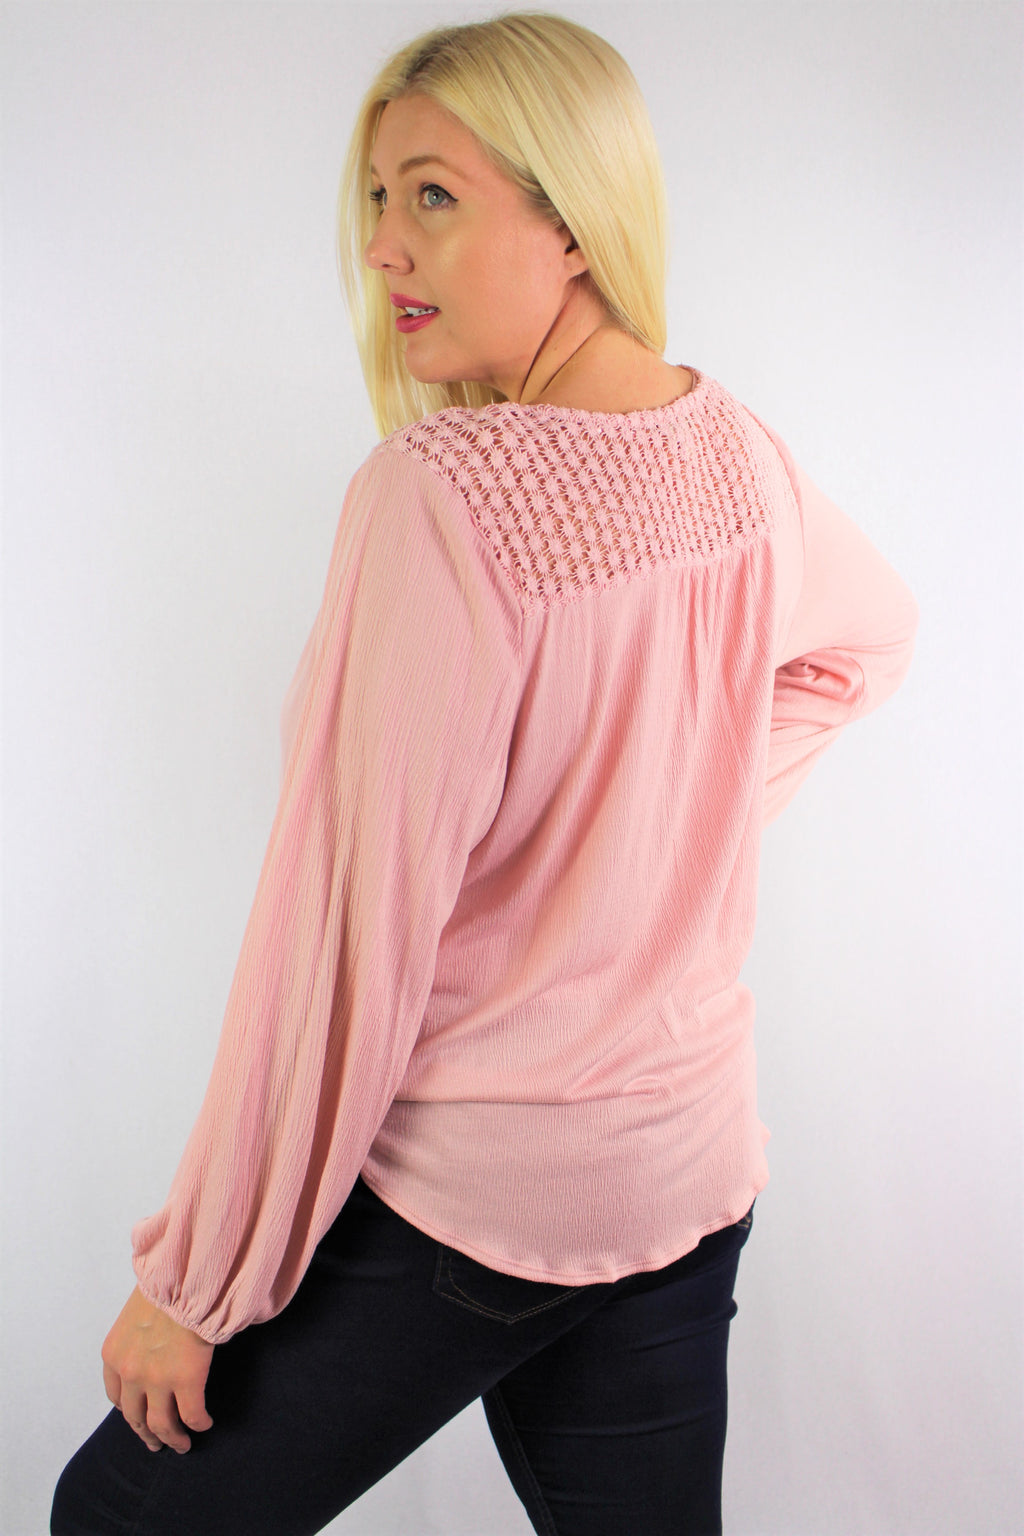 Women's Long Sleeve V Neck Top with Front Knot and Lace Detail